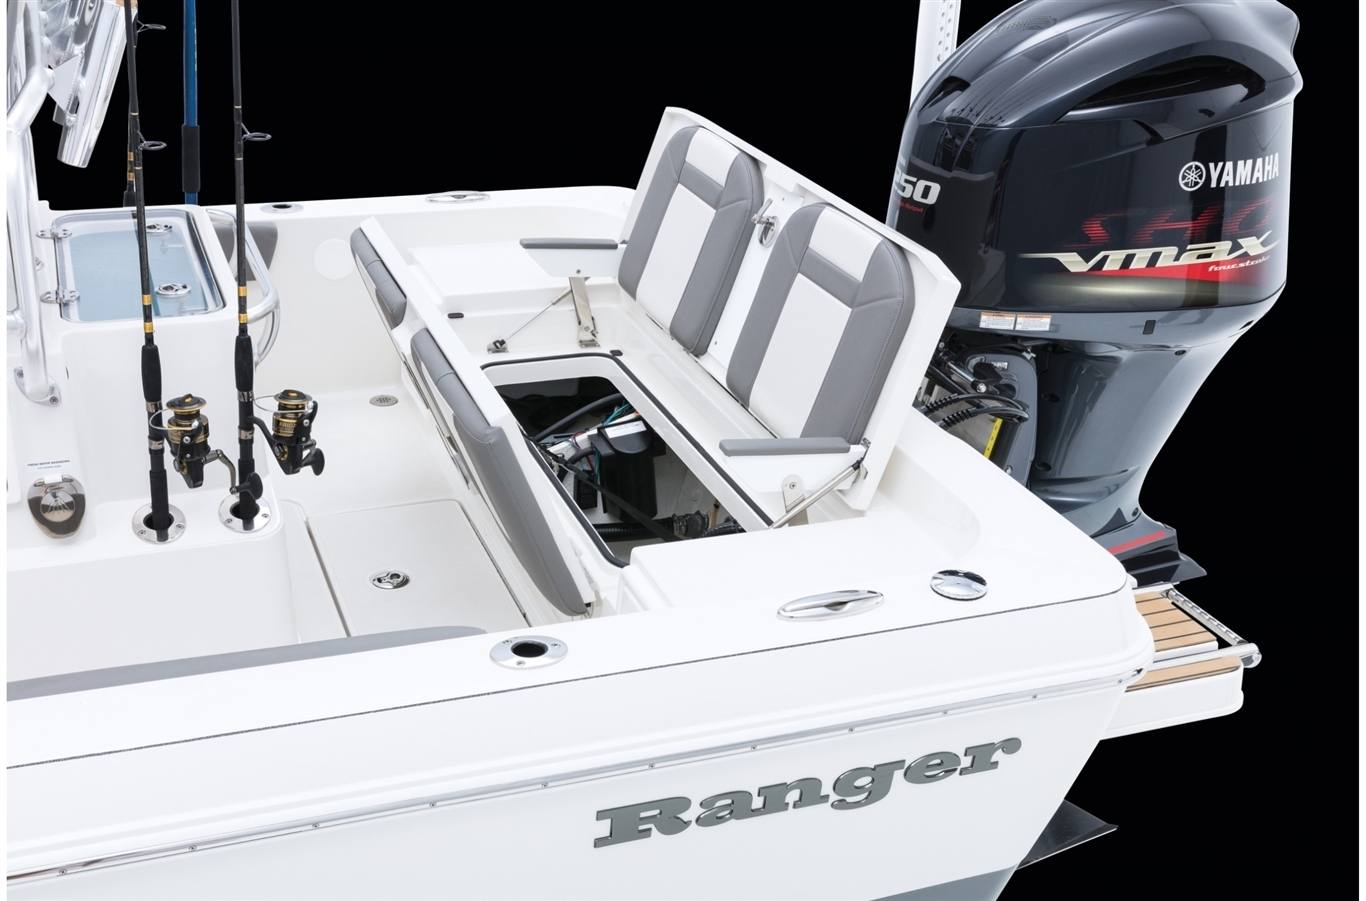 2019 Ranger 2360 Bay for sale in Casper, WY  Driven Powersports and